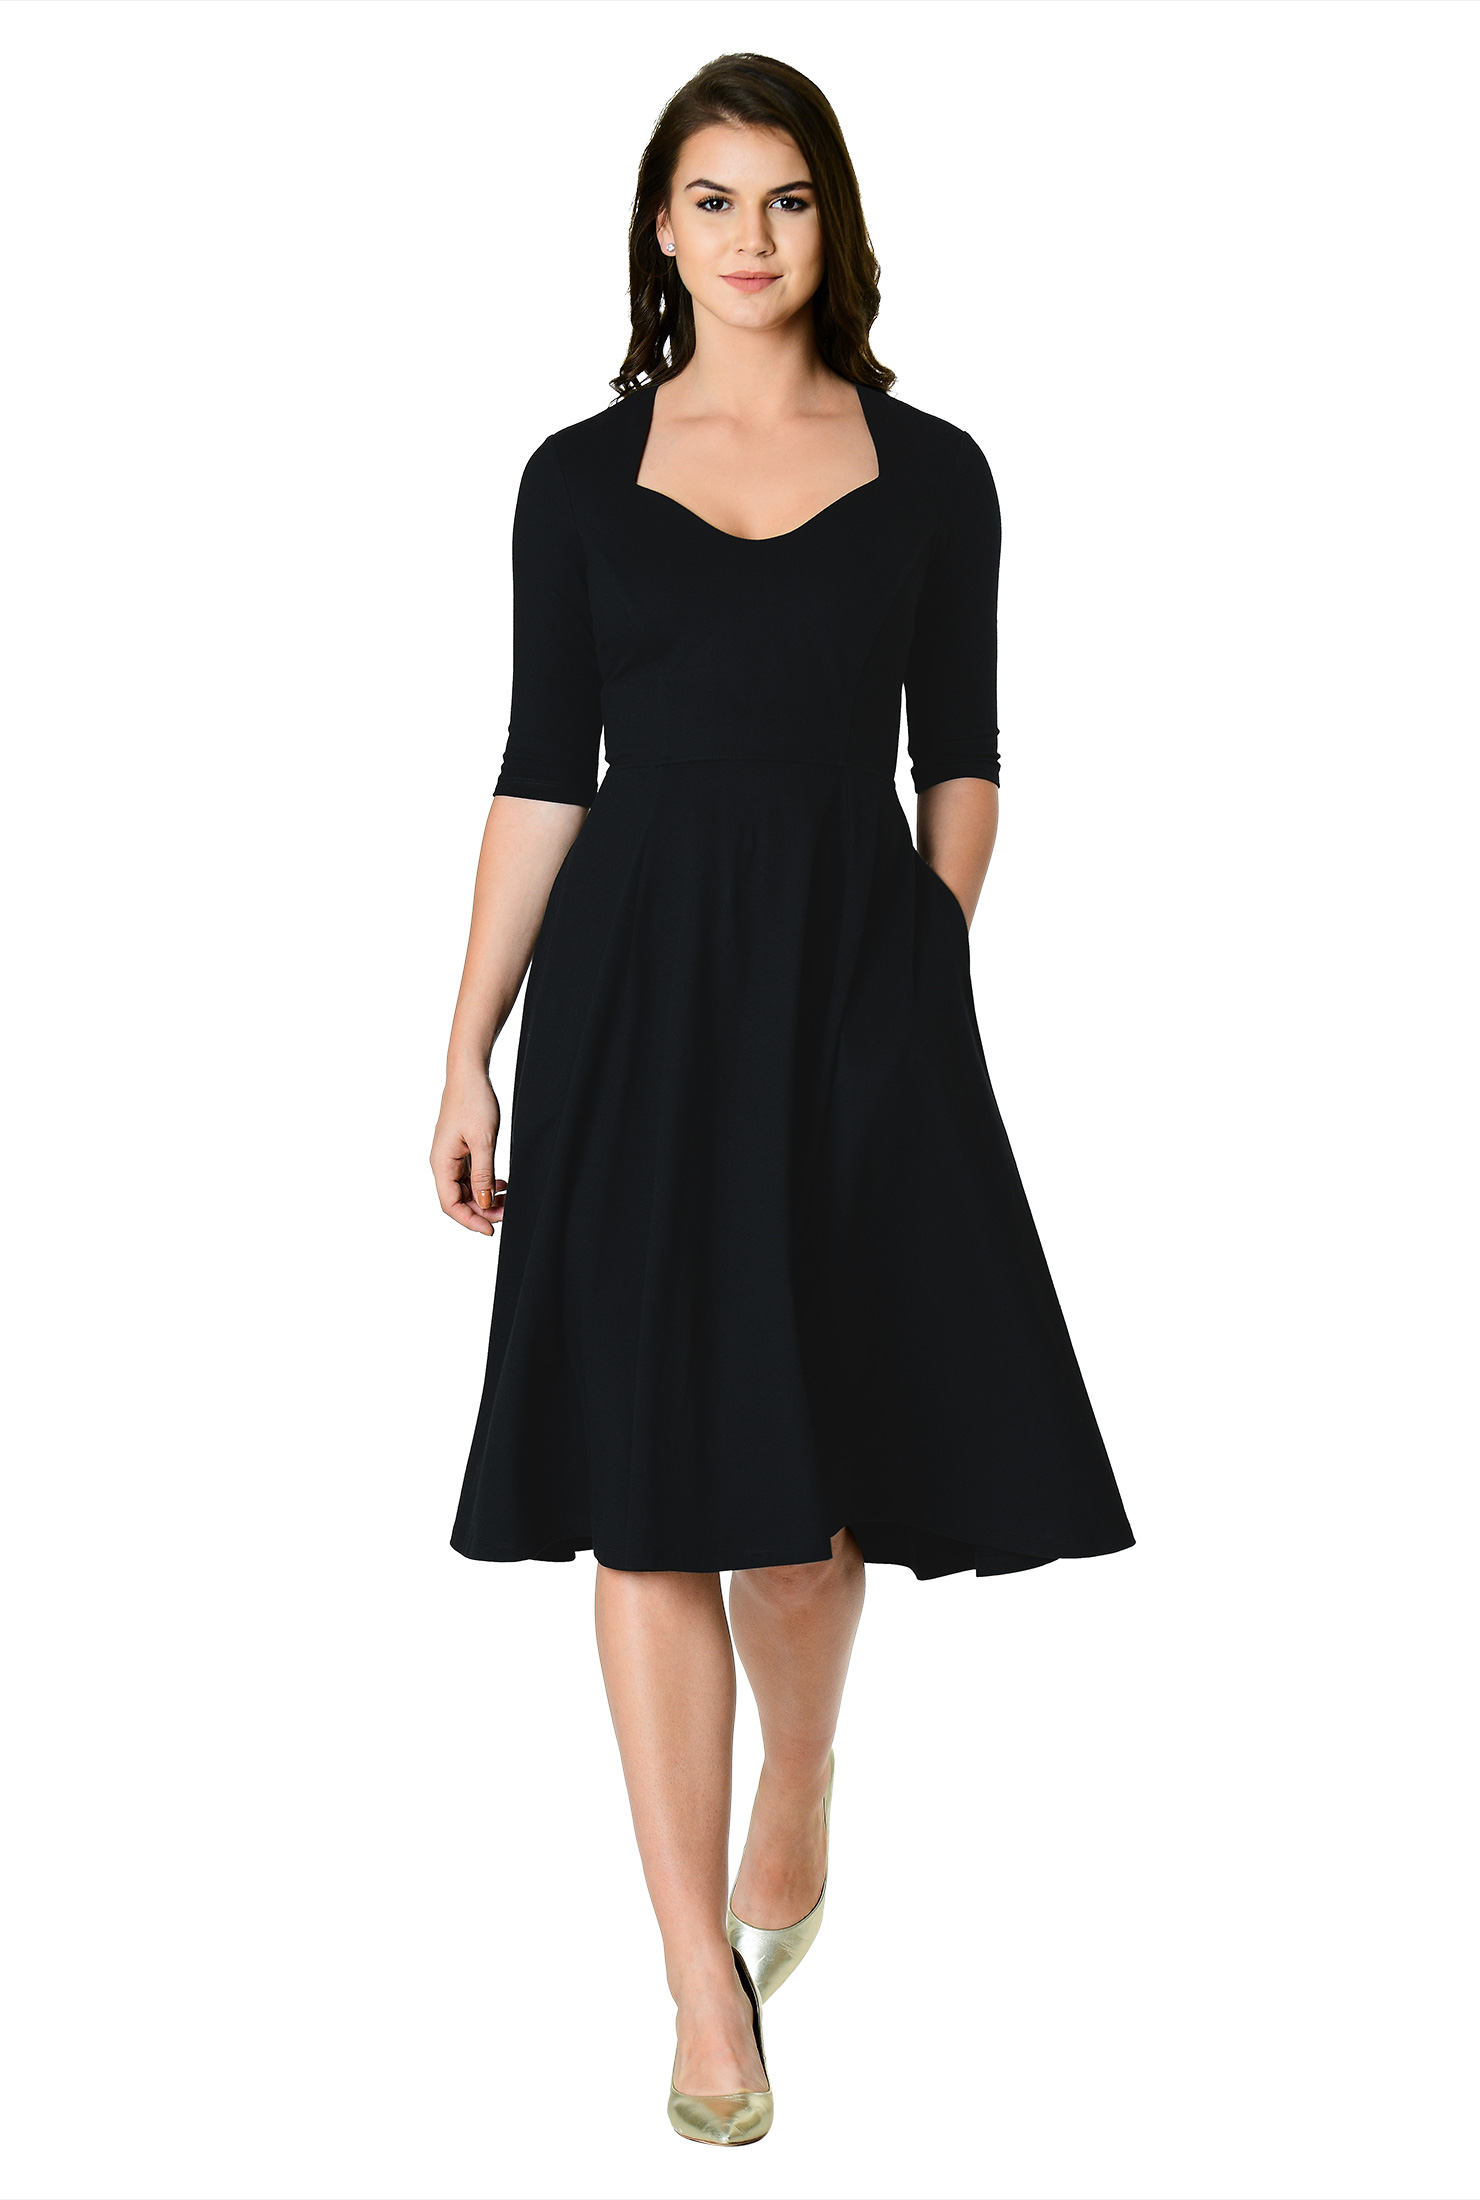 1950s Cocktail Dresses, Party Dresses Sweetheart cotton knit fit-and-flare dress $69.95 AT vintagedancer.com